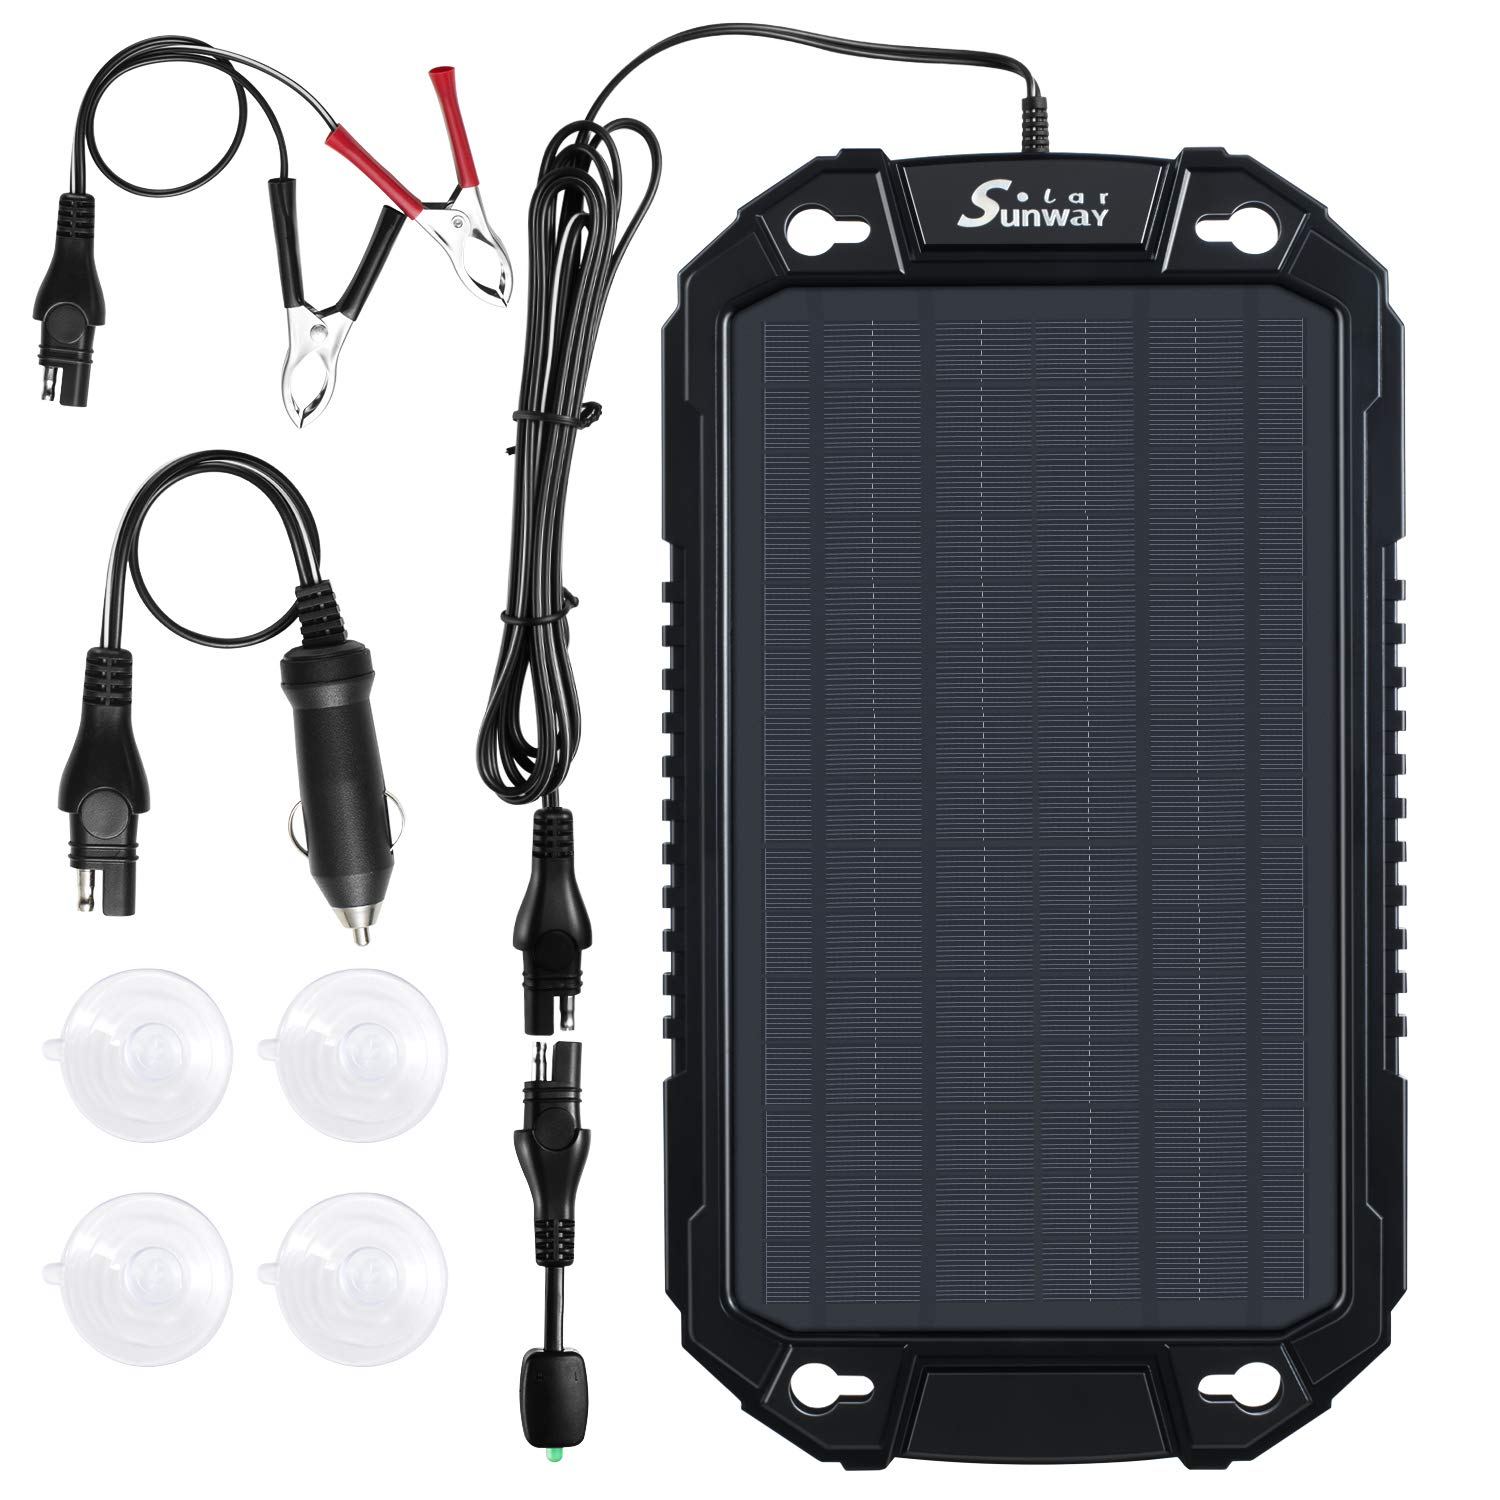 Sunway Solar Car Battery Trickle Charger & Maintainer 8W Solar Panel Power Charger kit Portable Backup Waterproof For Automotive RV Marine Boat Truck Motorcycle Trailer Tractor Powersports Snowmobile by Sunway Solar